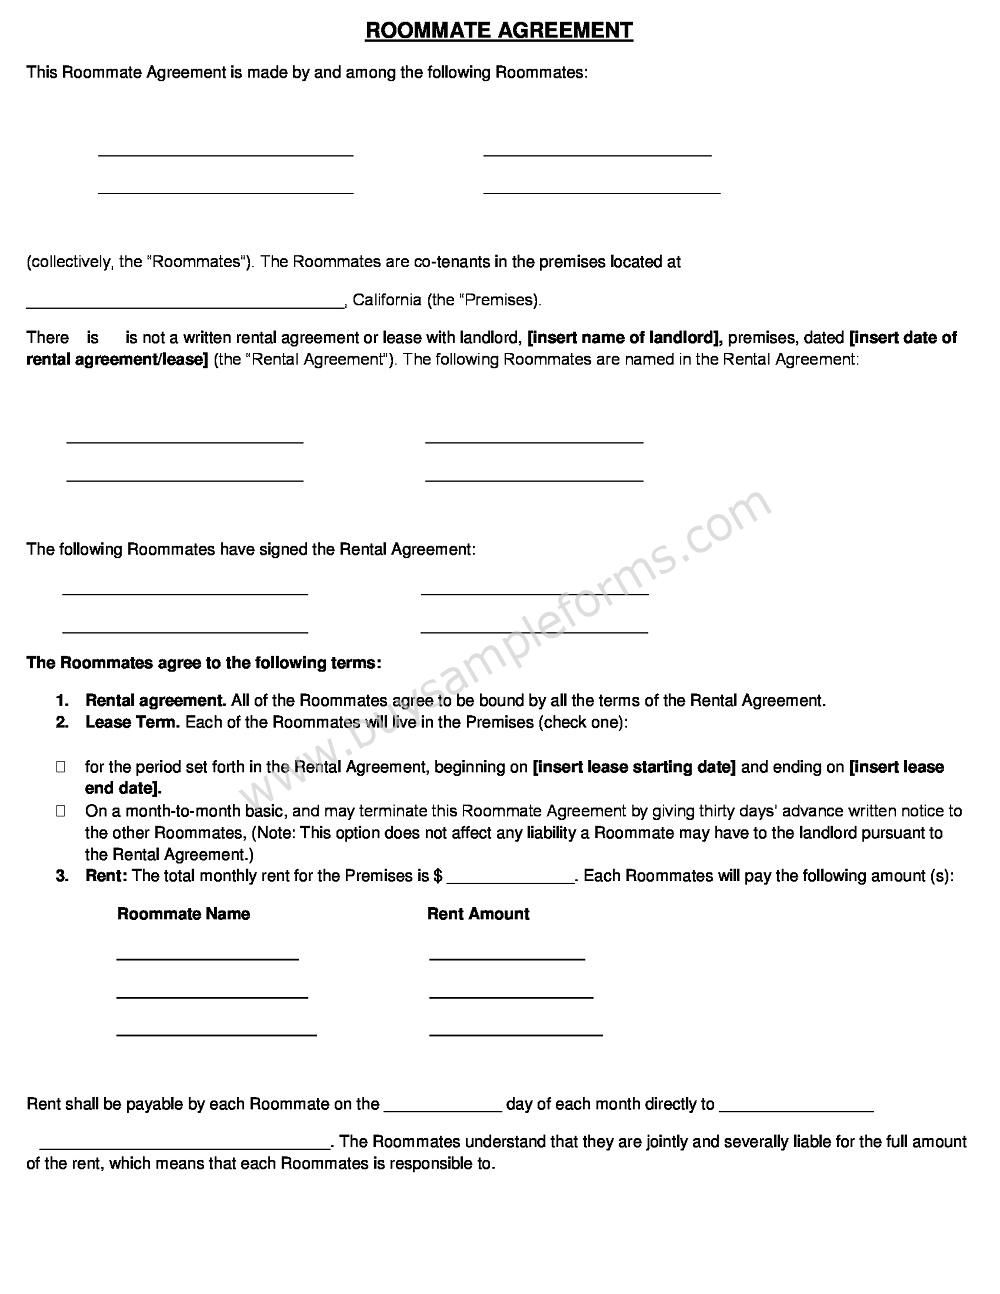 Roommate Rental Agreement Form Template Word Doc